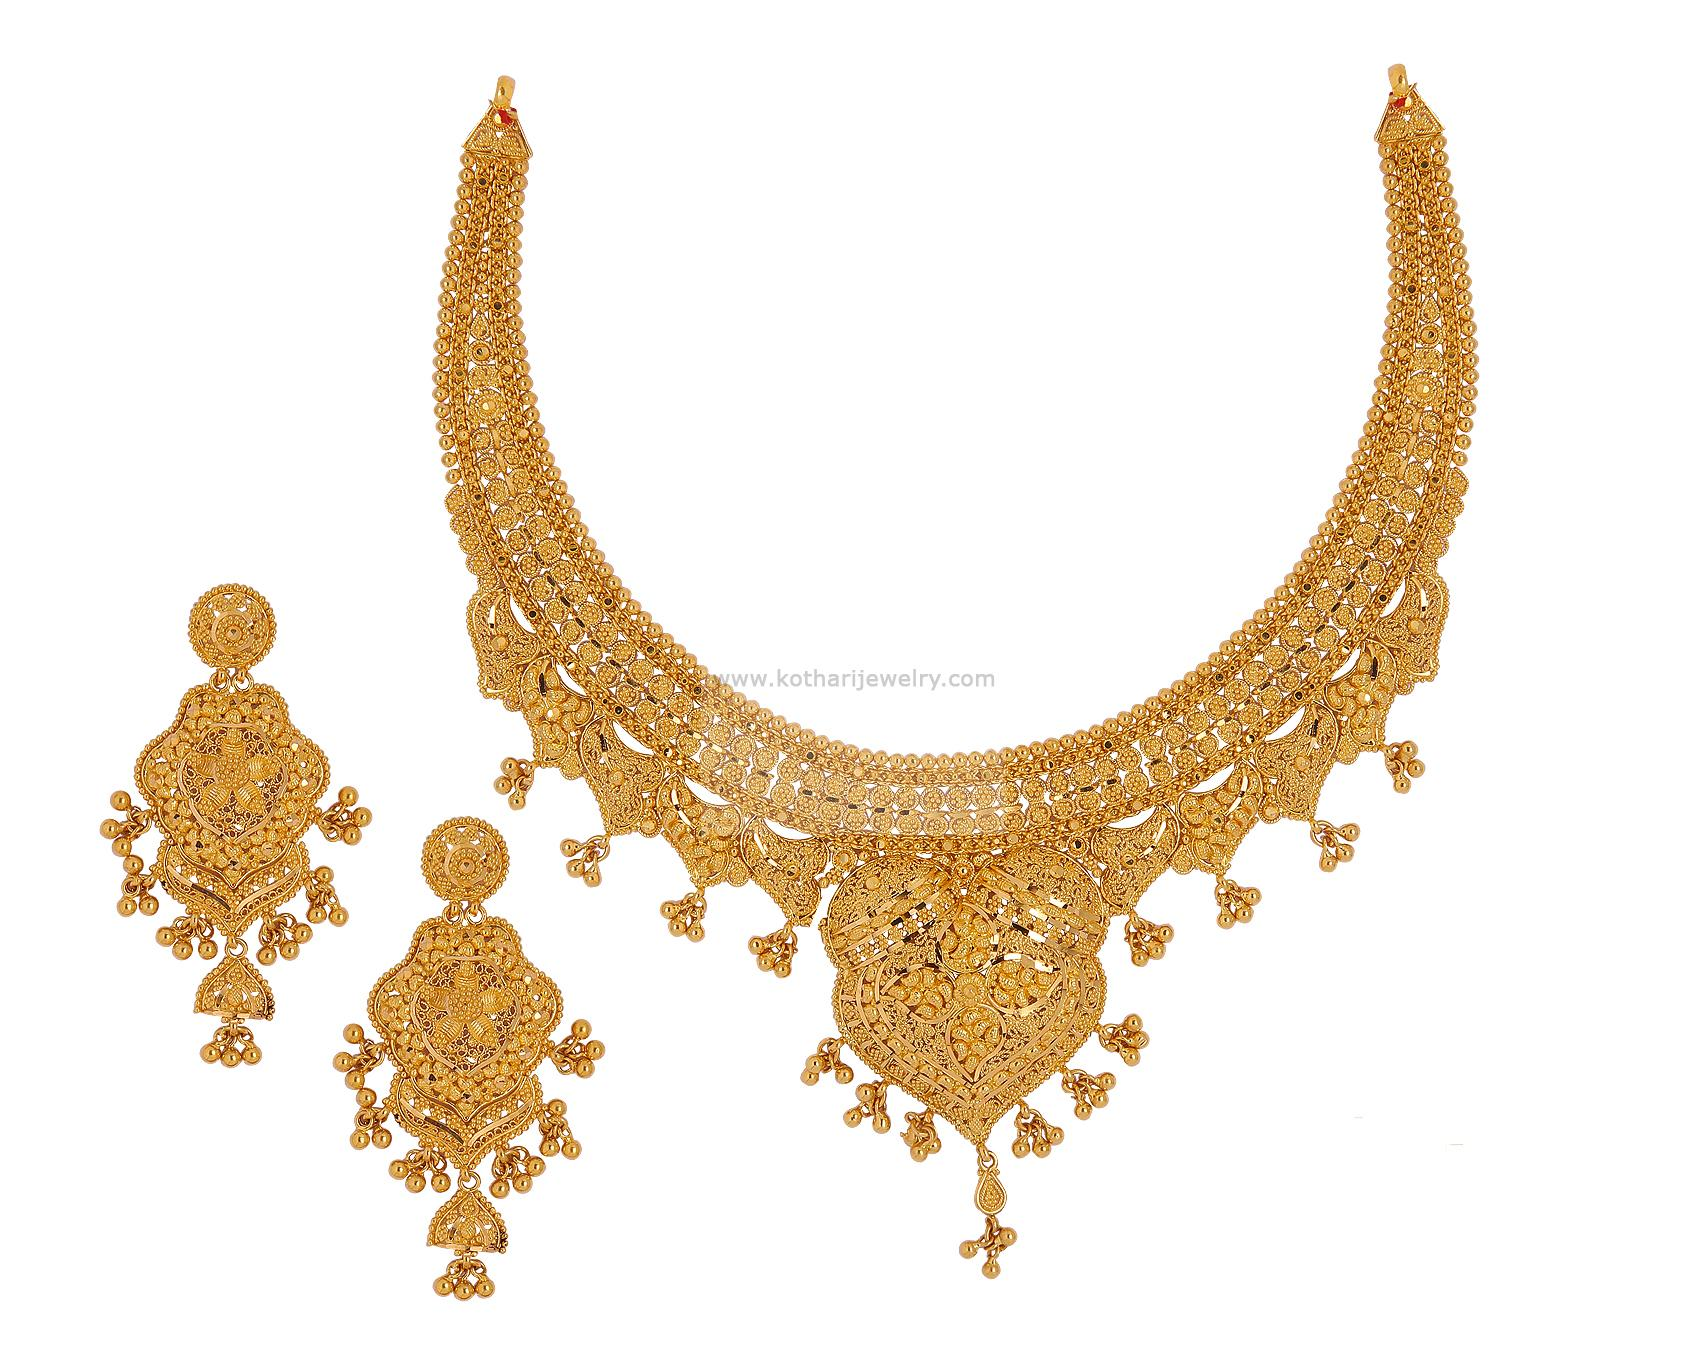 Necklaces / Harams - Gold Jewellery Necklaces / Harams (NKARH00009 ...